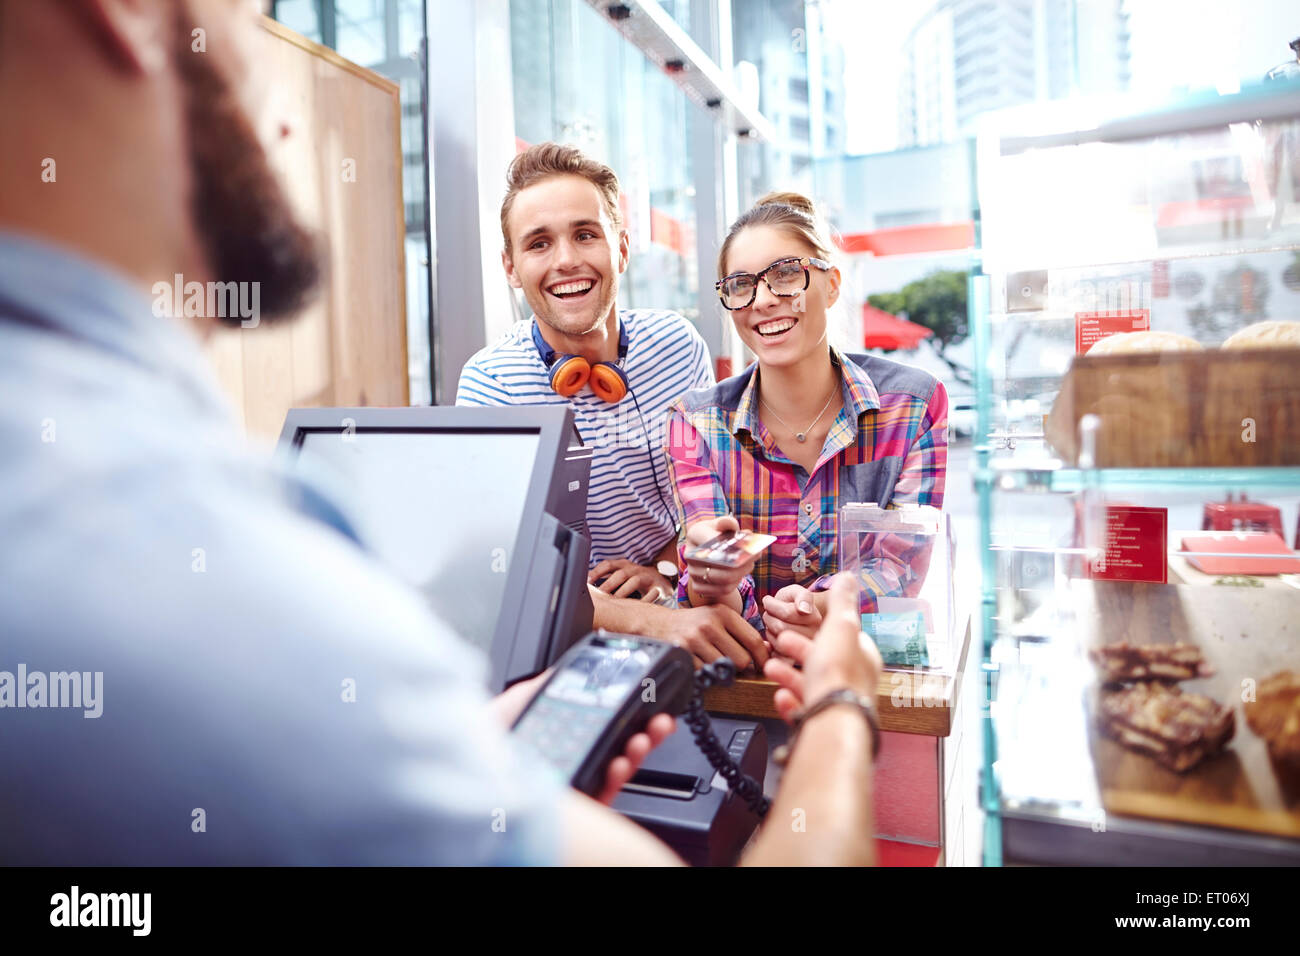 Smiling couple paying worker at cafe counter - Stock Image